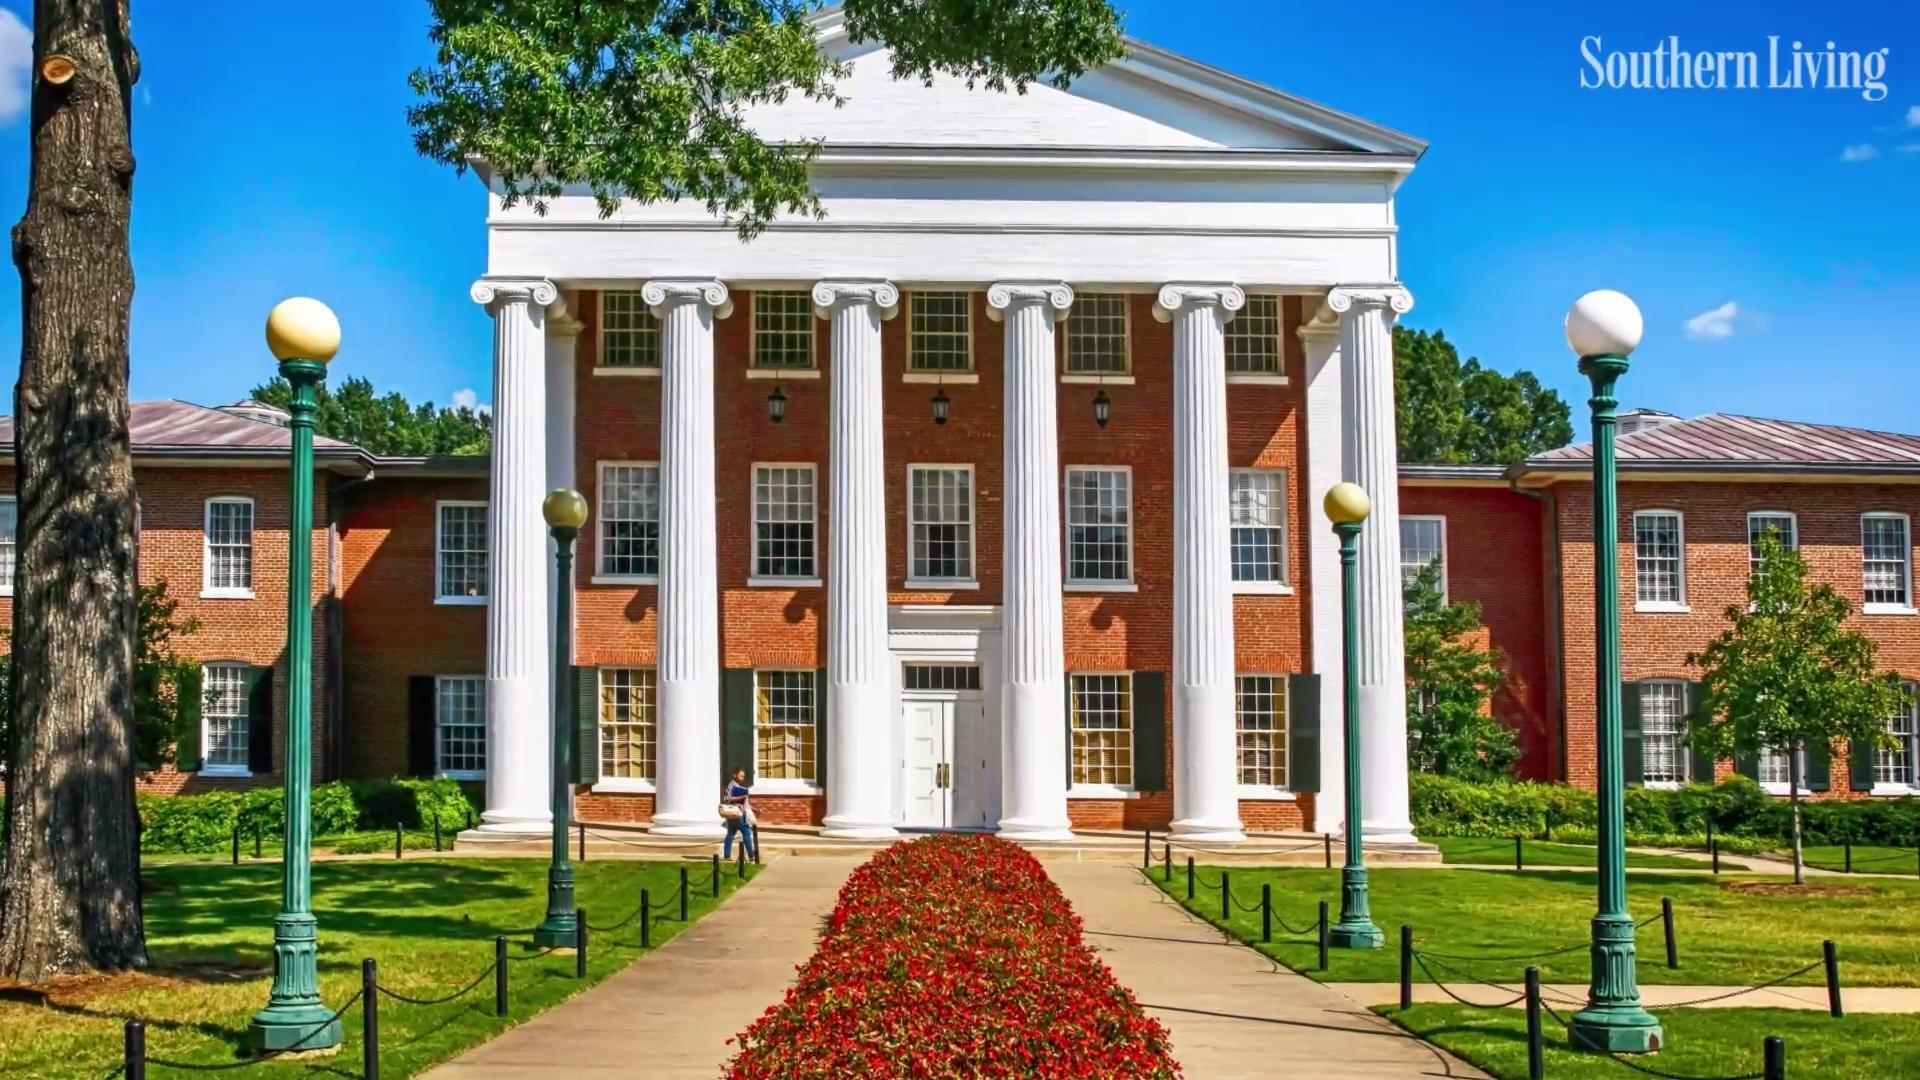 These Southern Schools have Beauty and Brains